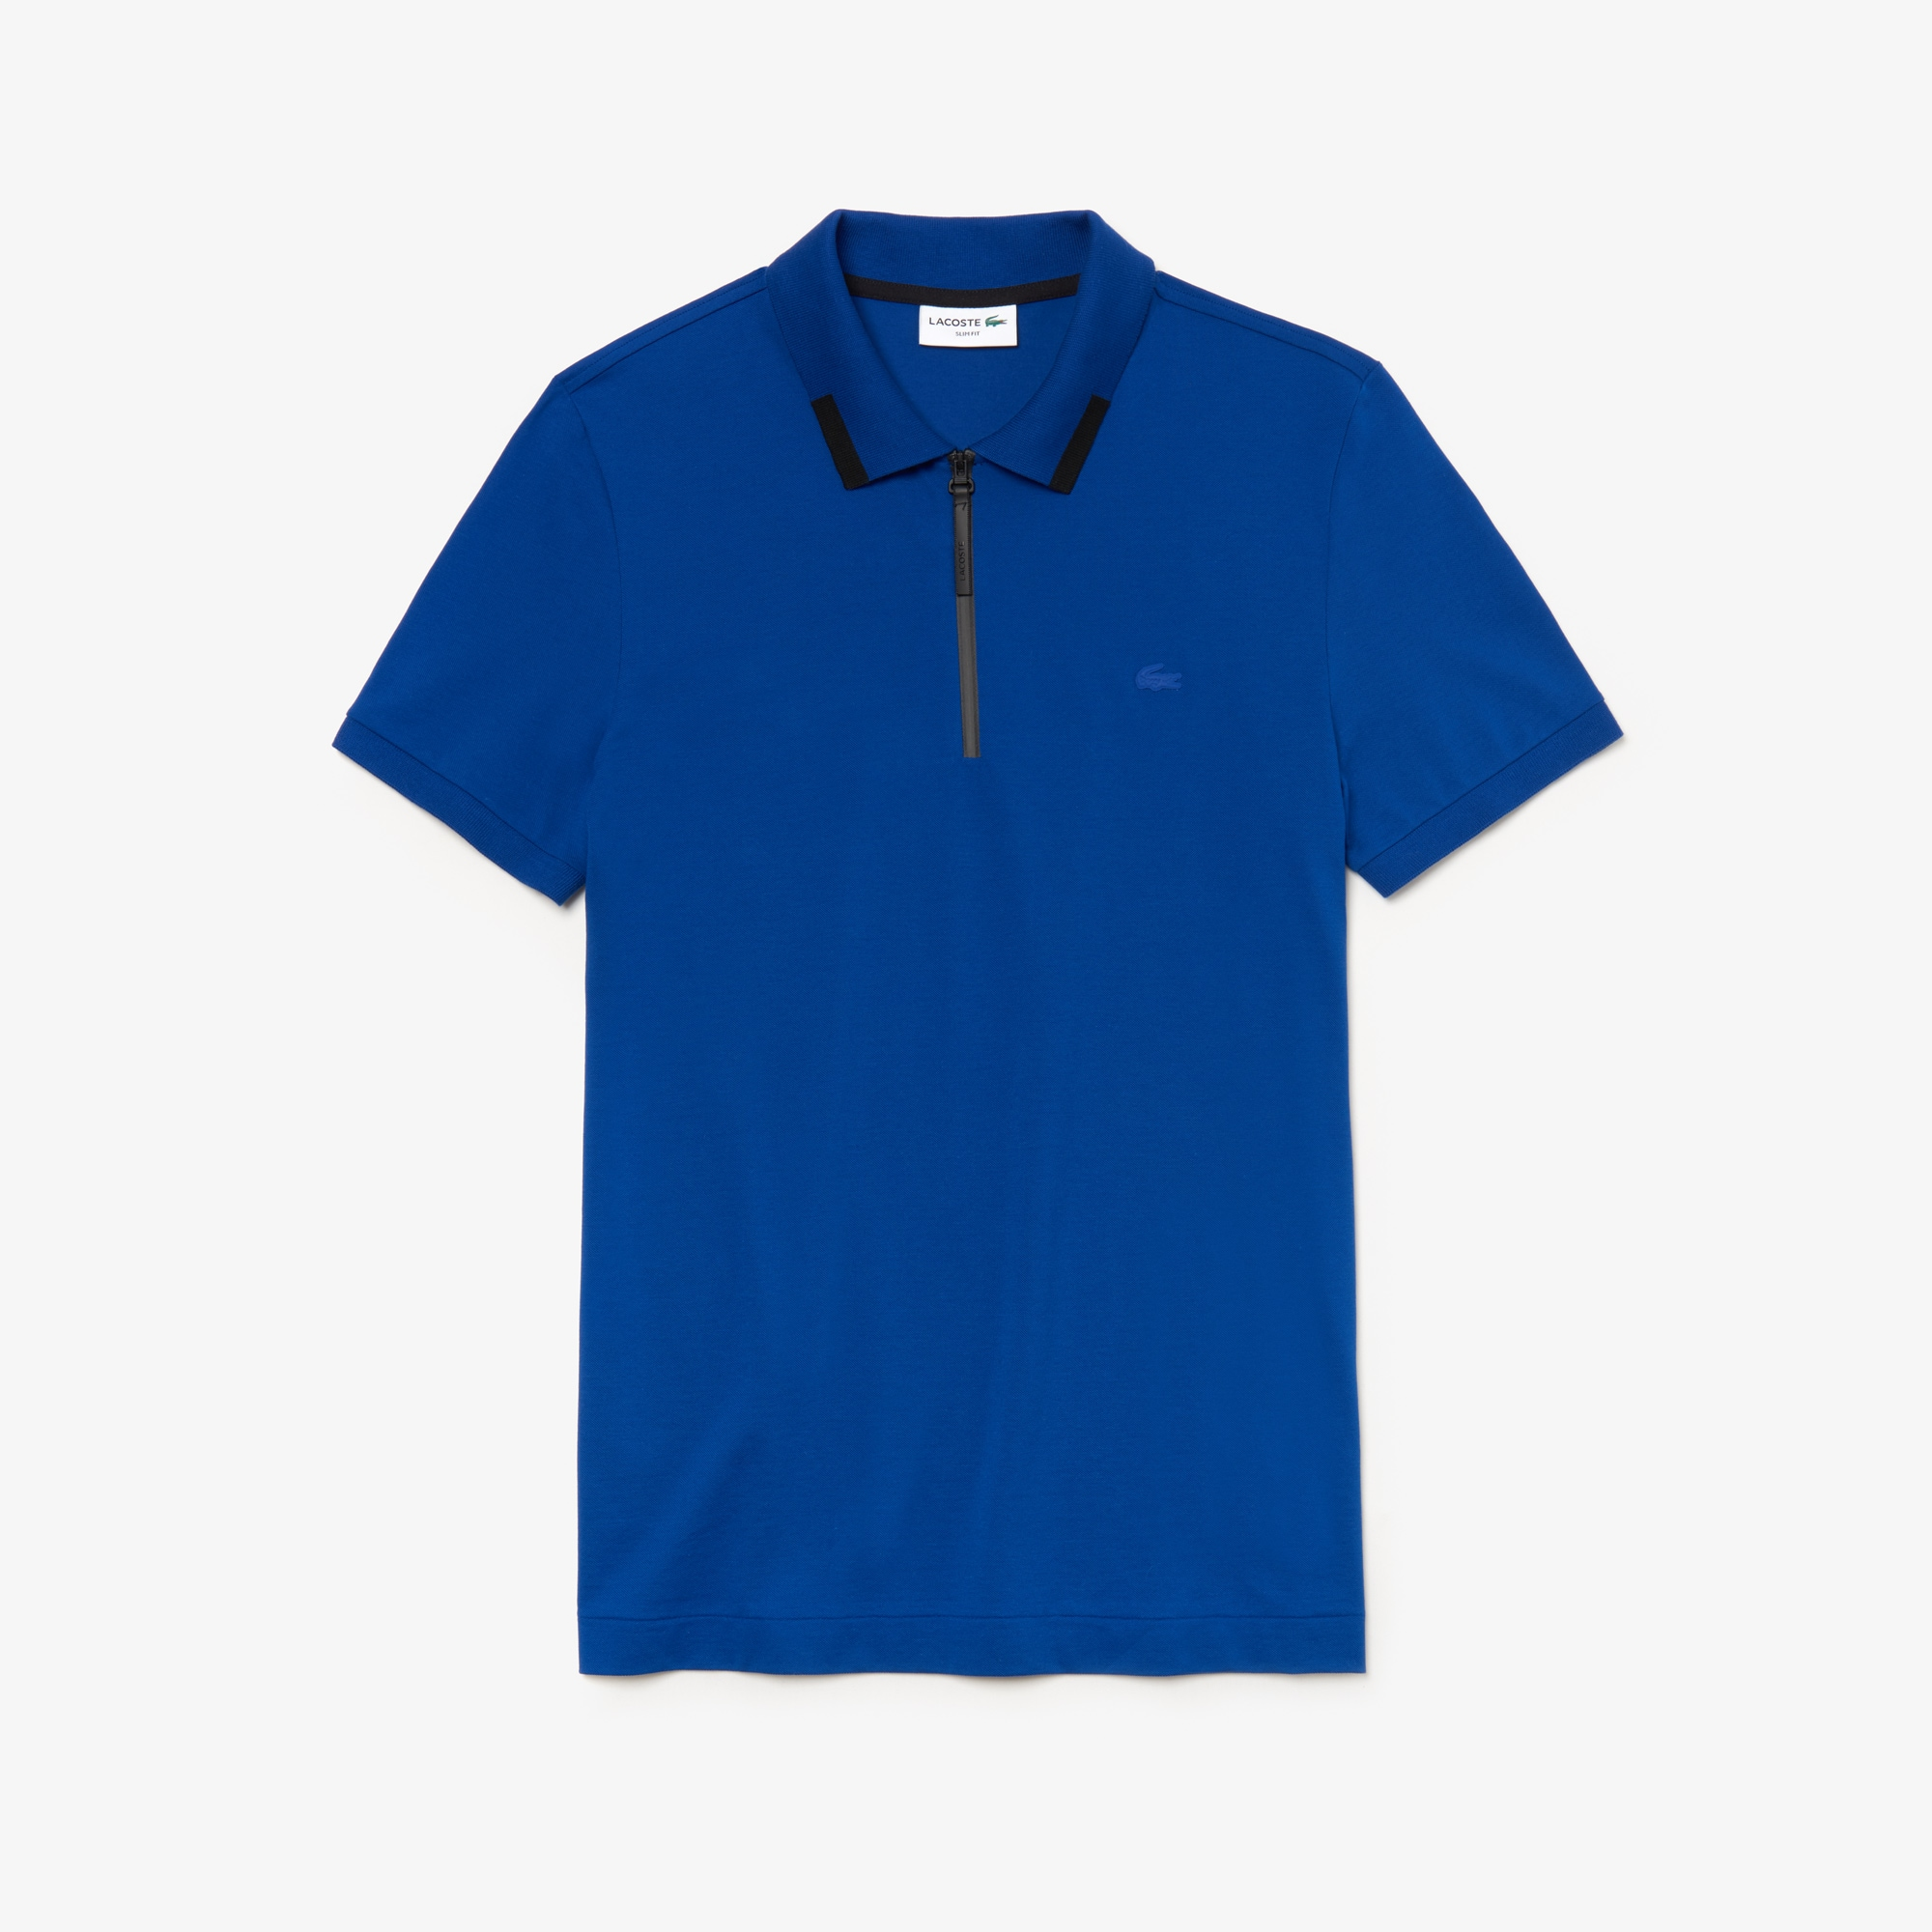 Men's Lacoste Motion Slim Fit Zip Collar Cotton Piqué Polo Shirt